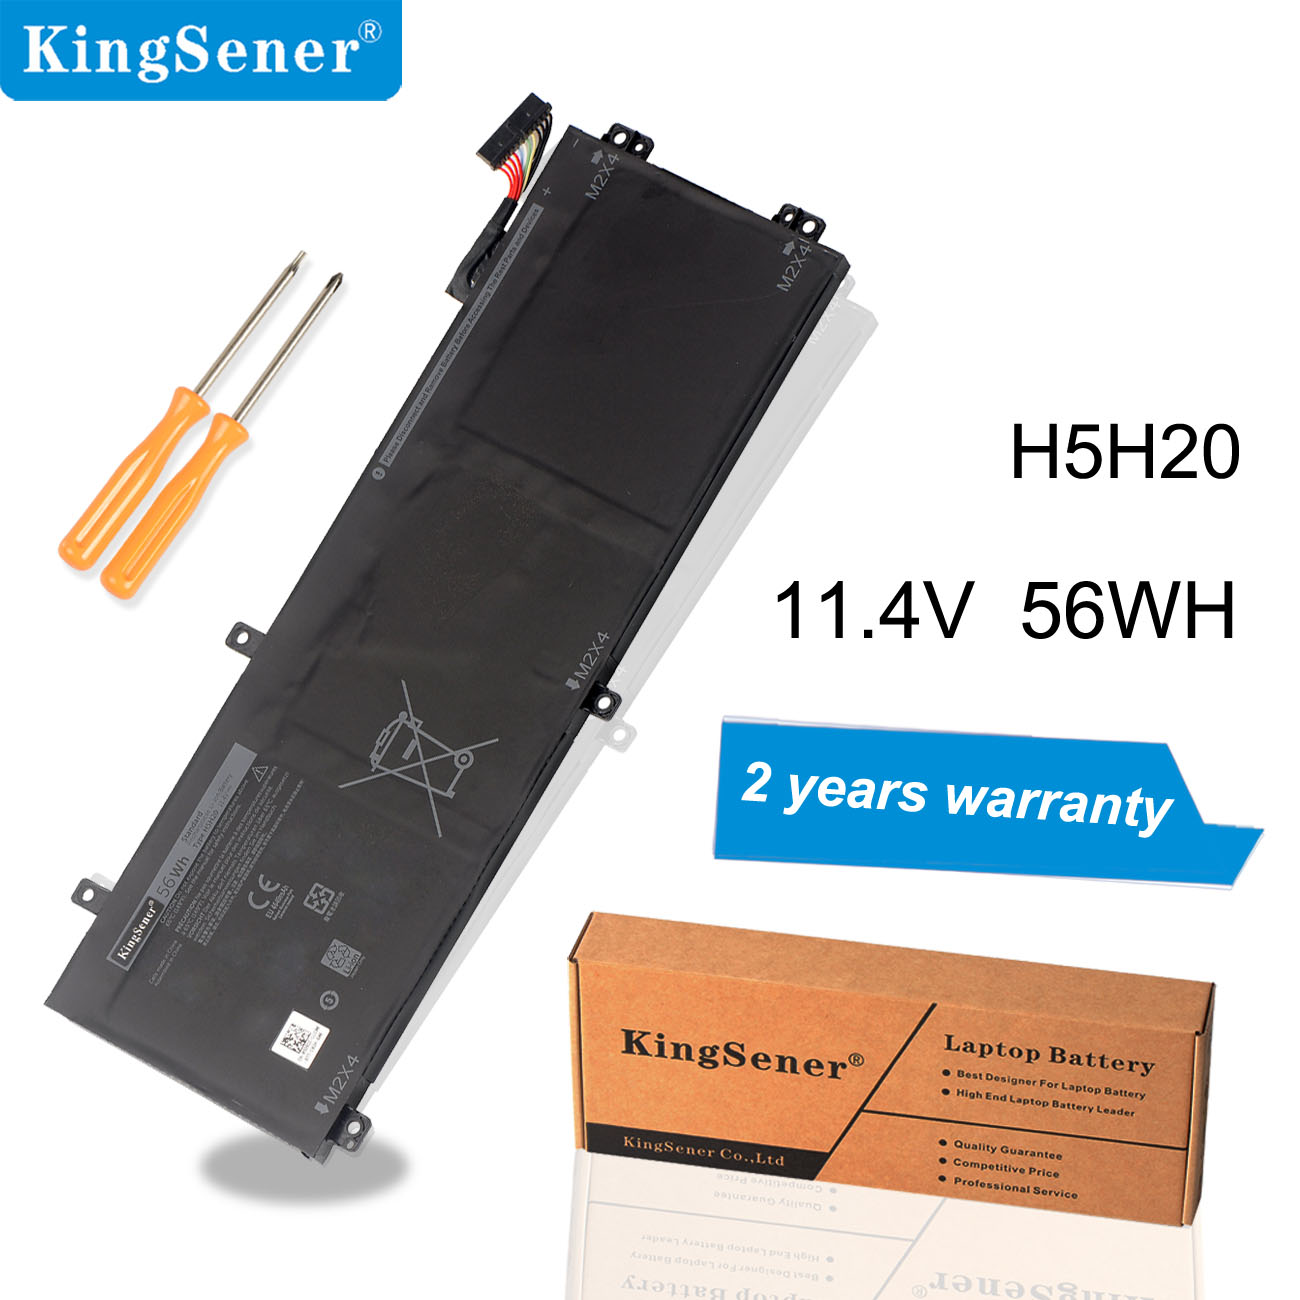 Kingsener H5H20 Laptop Battery For DELL XPS 15 9560 9570 15-9560-D1845 Precision M5520 5530 62MJV M7R96 05041C 5D91C 11.4V 56Wh